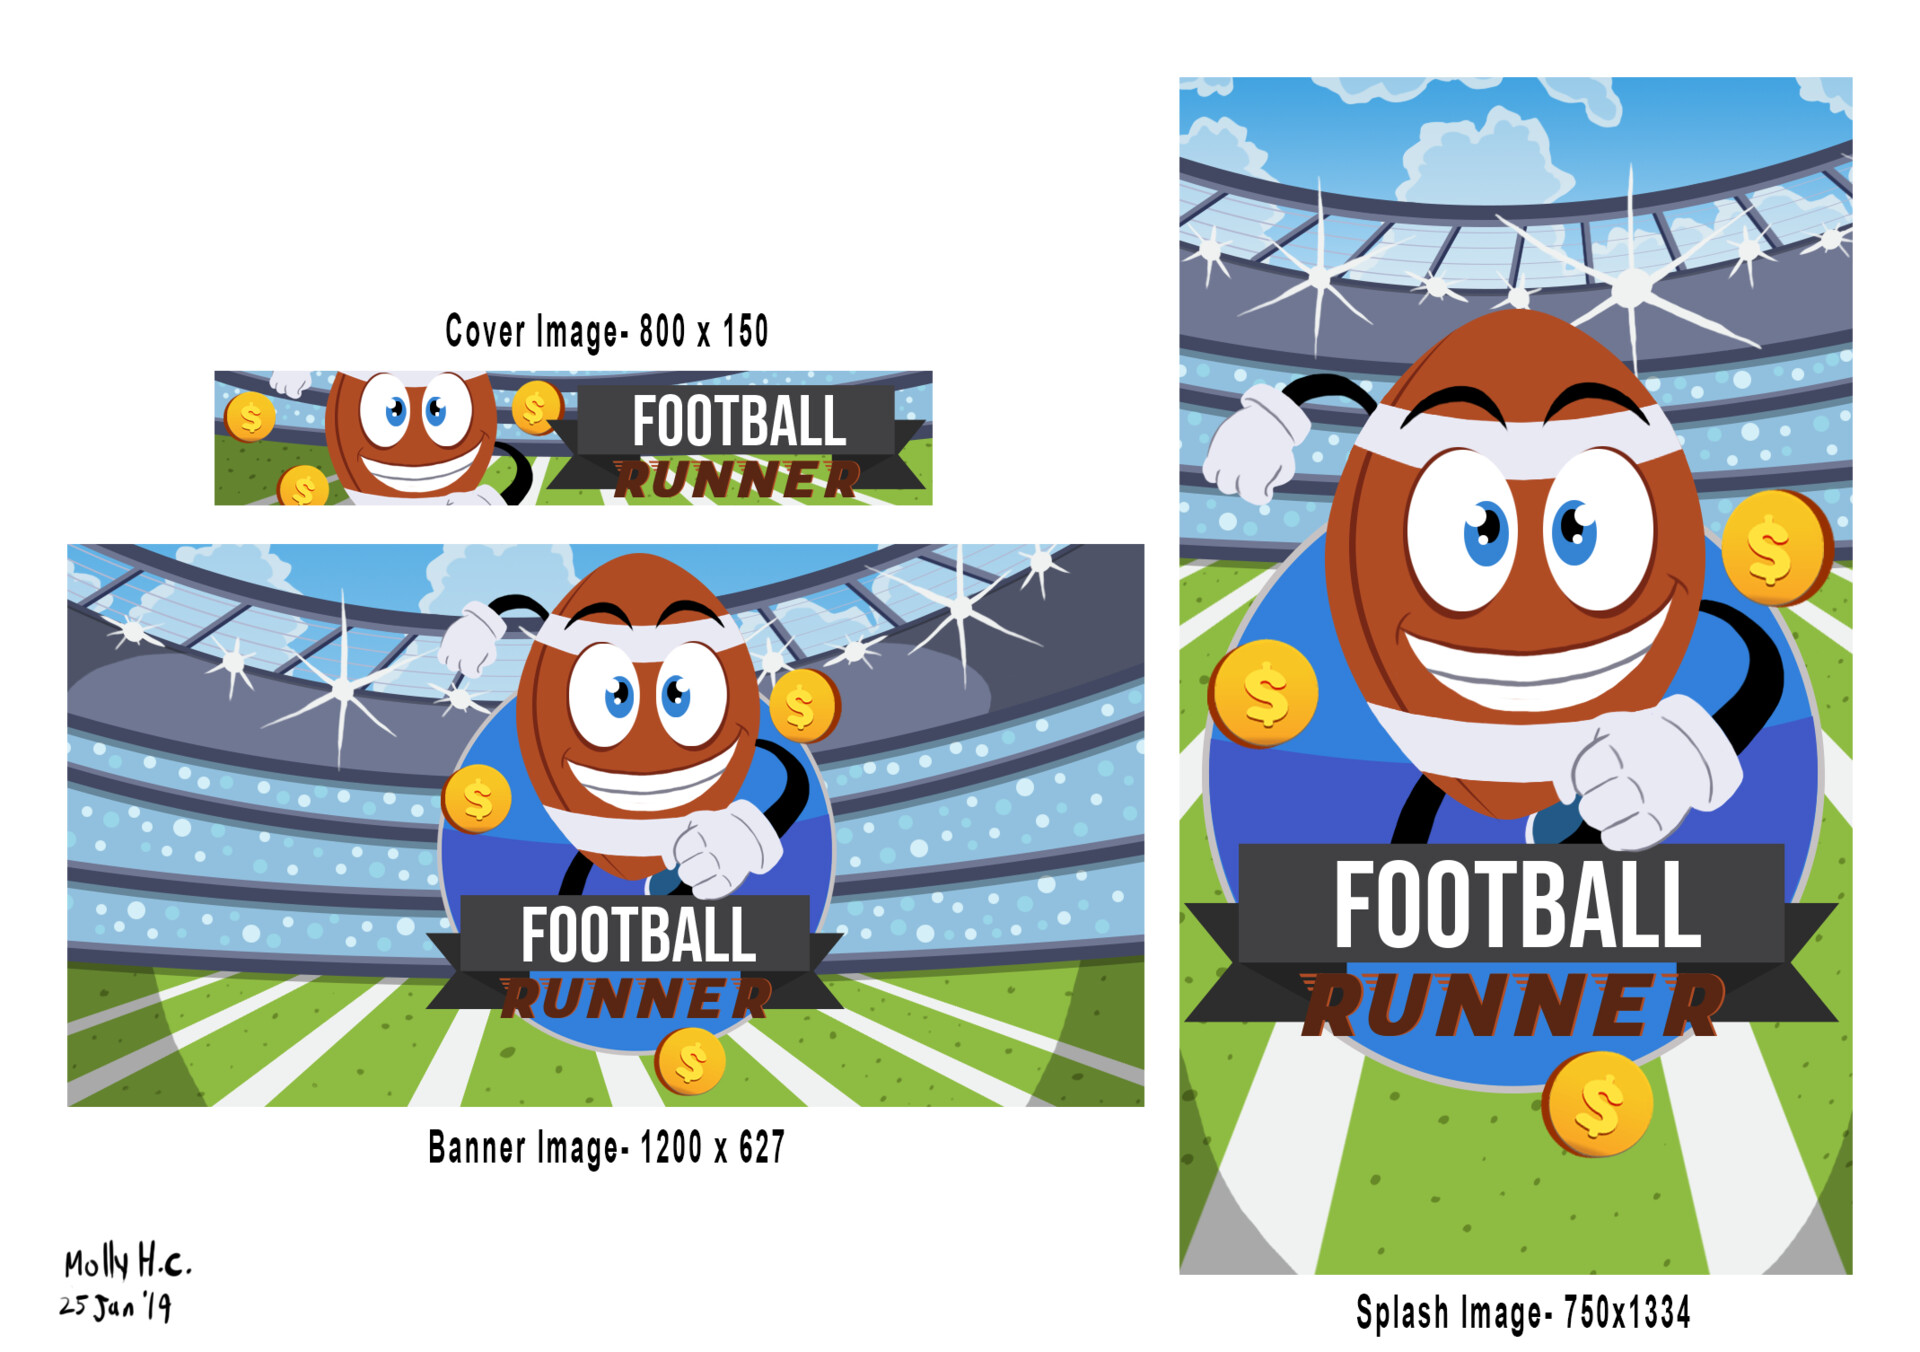 Molly heady carroll footballrunner promoartv2